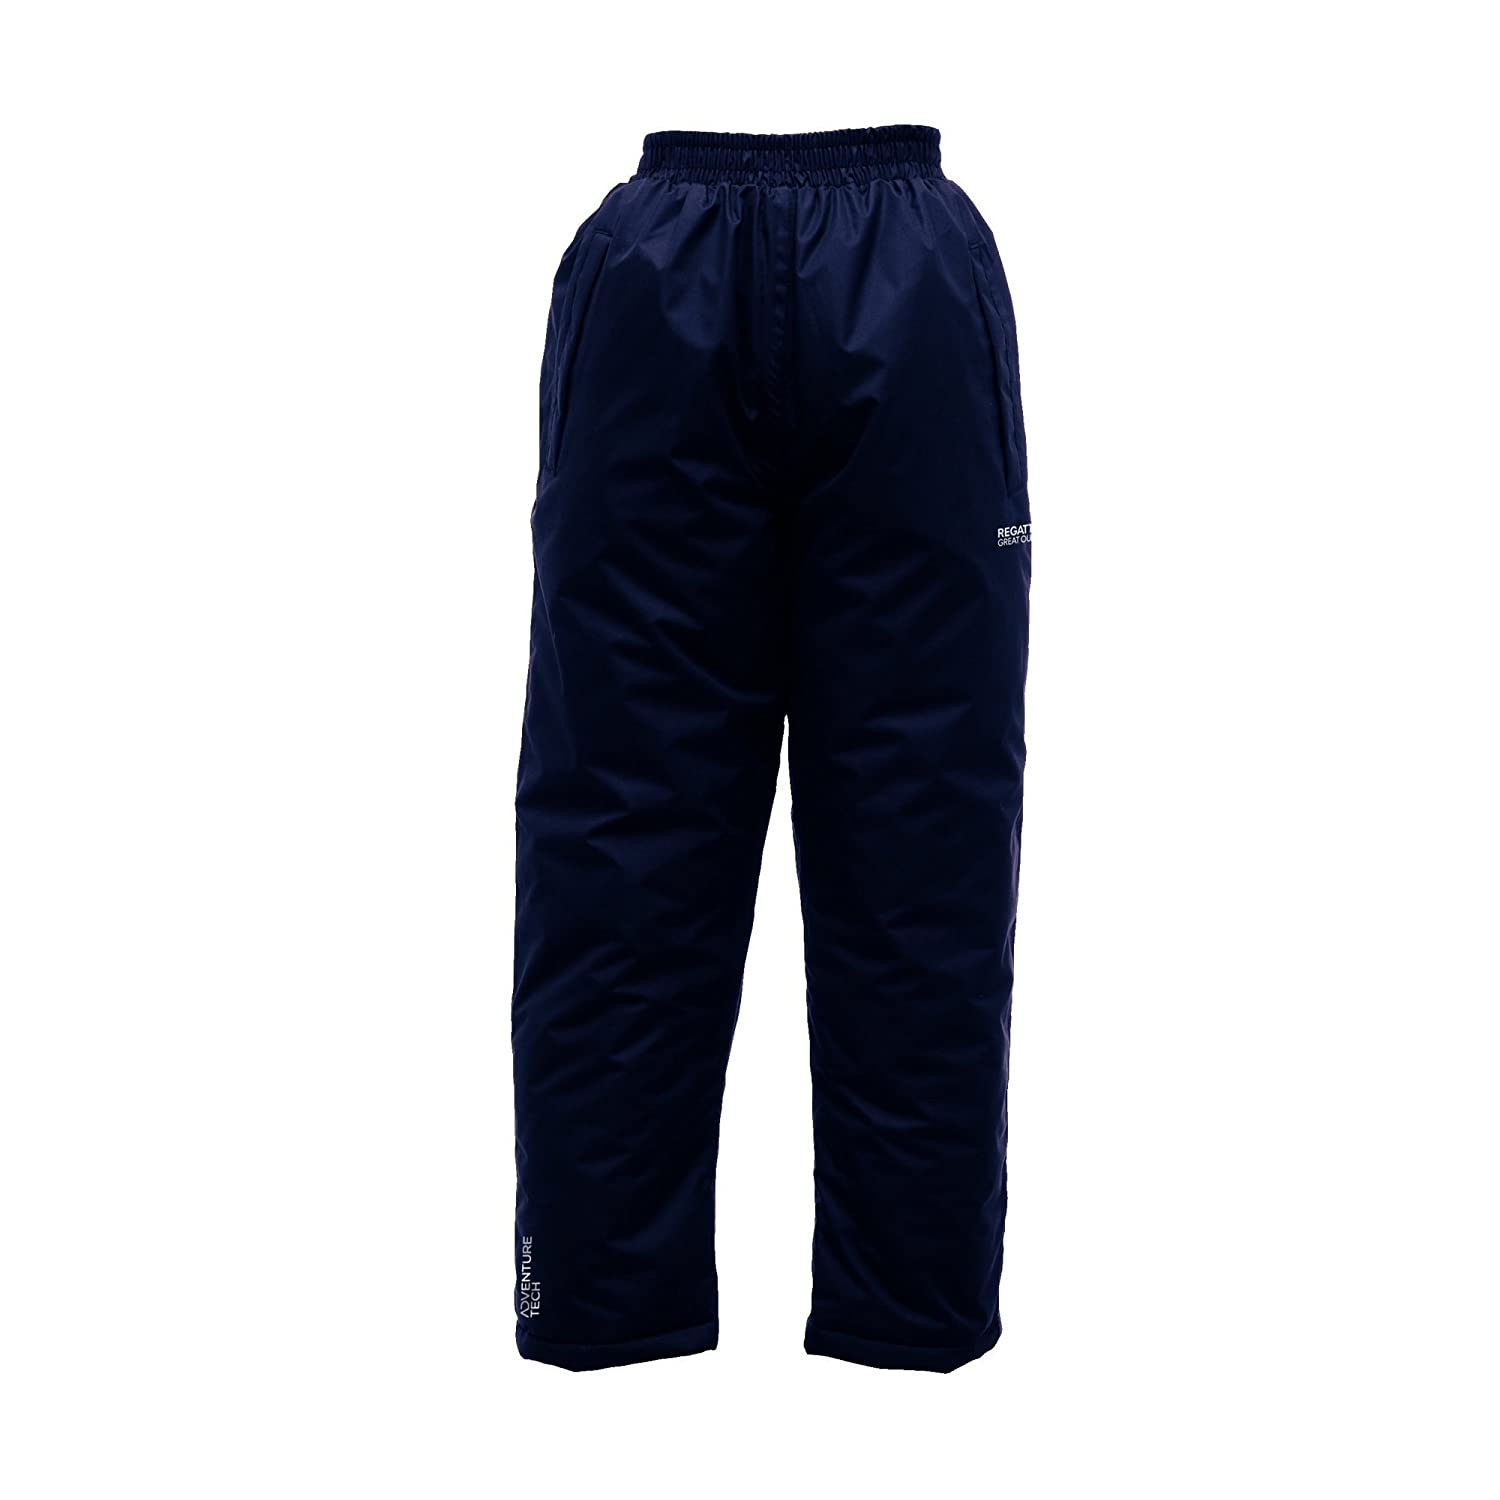 Regatta Great Outdoors Kids Adventure Tech Padded Chandler Waterproof Overtrousers